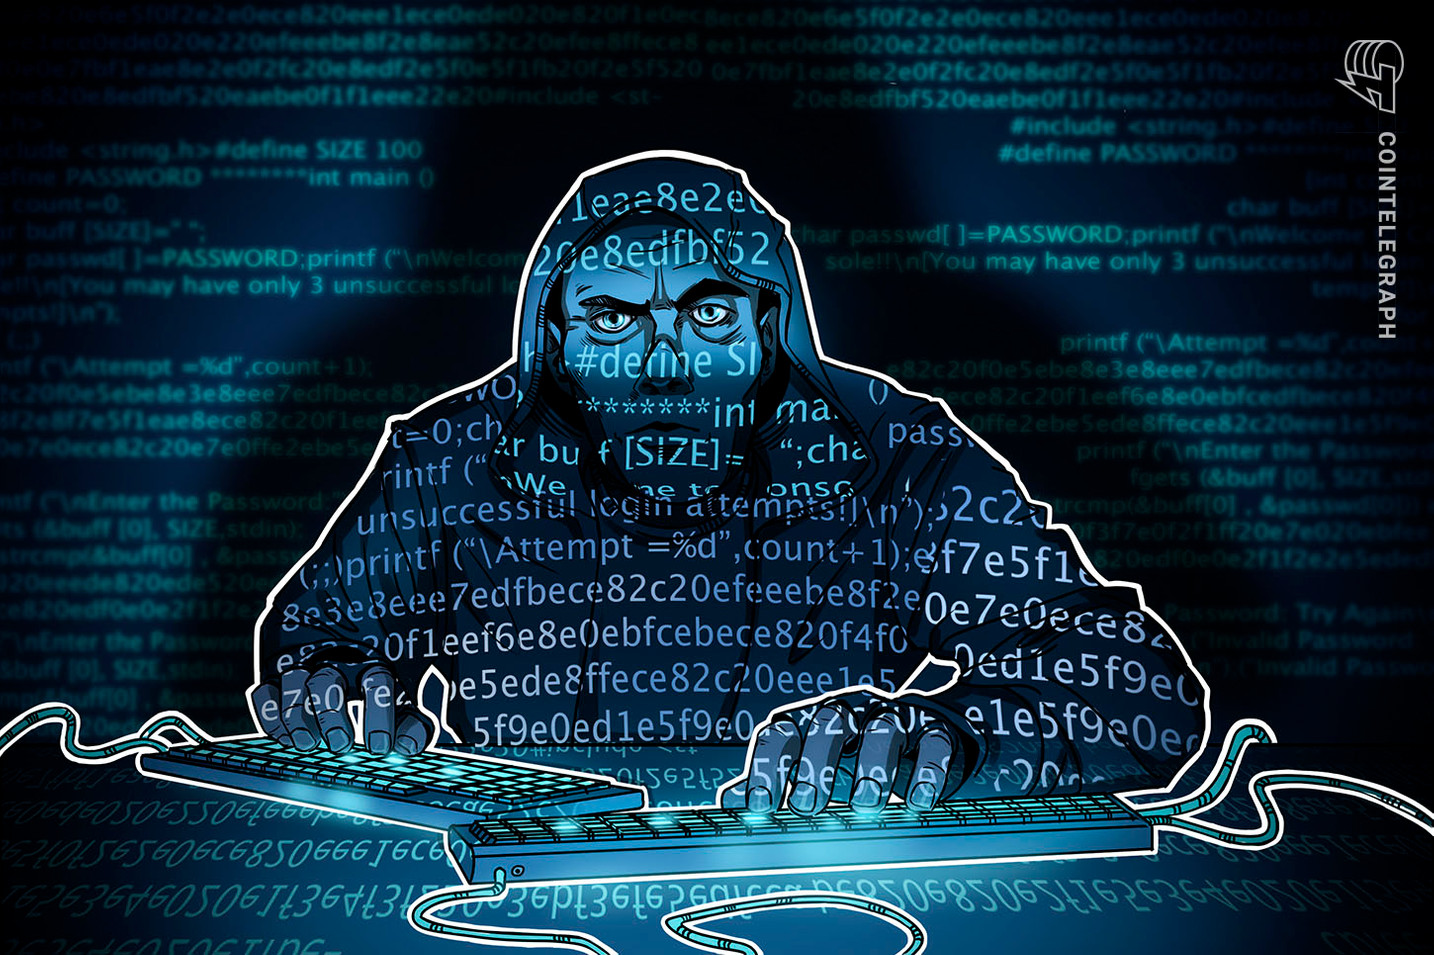 Ransomware Negotiations Revealed: Flattery and Empathy Works